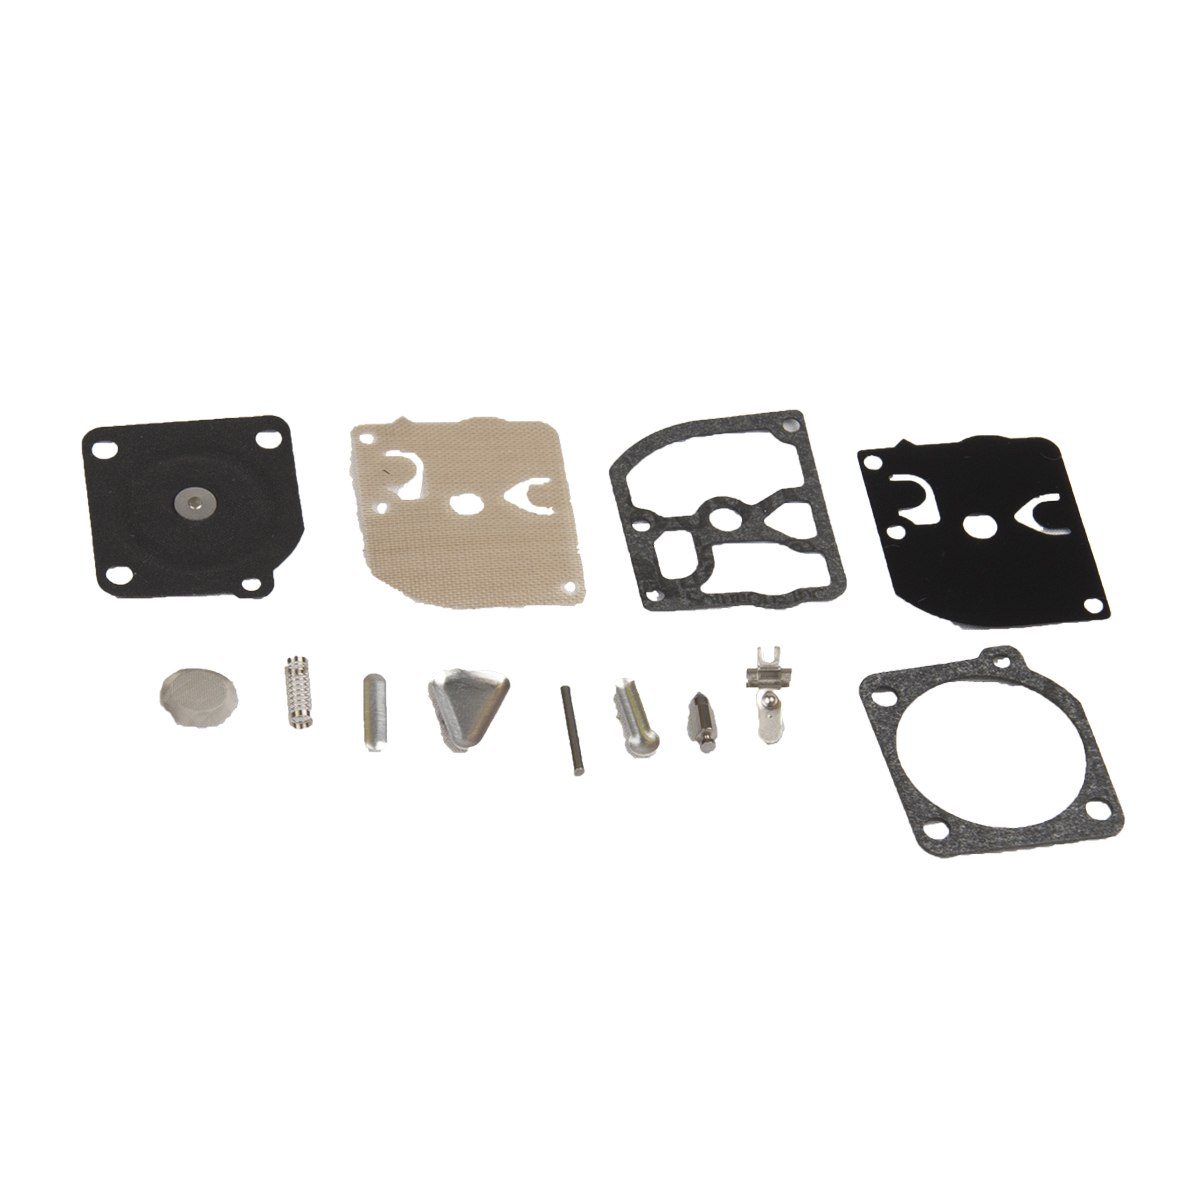 Husqvarna Kit Carburetor Repair 530035269